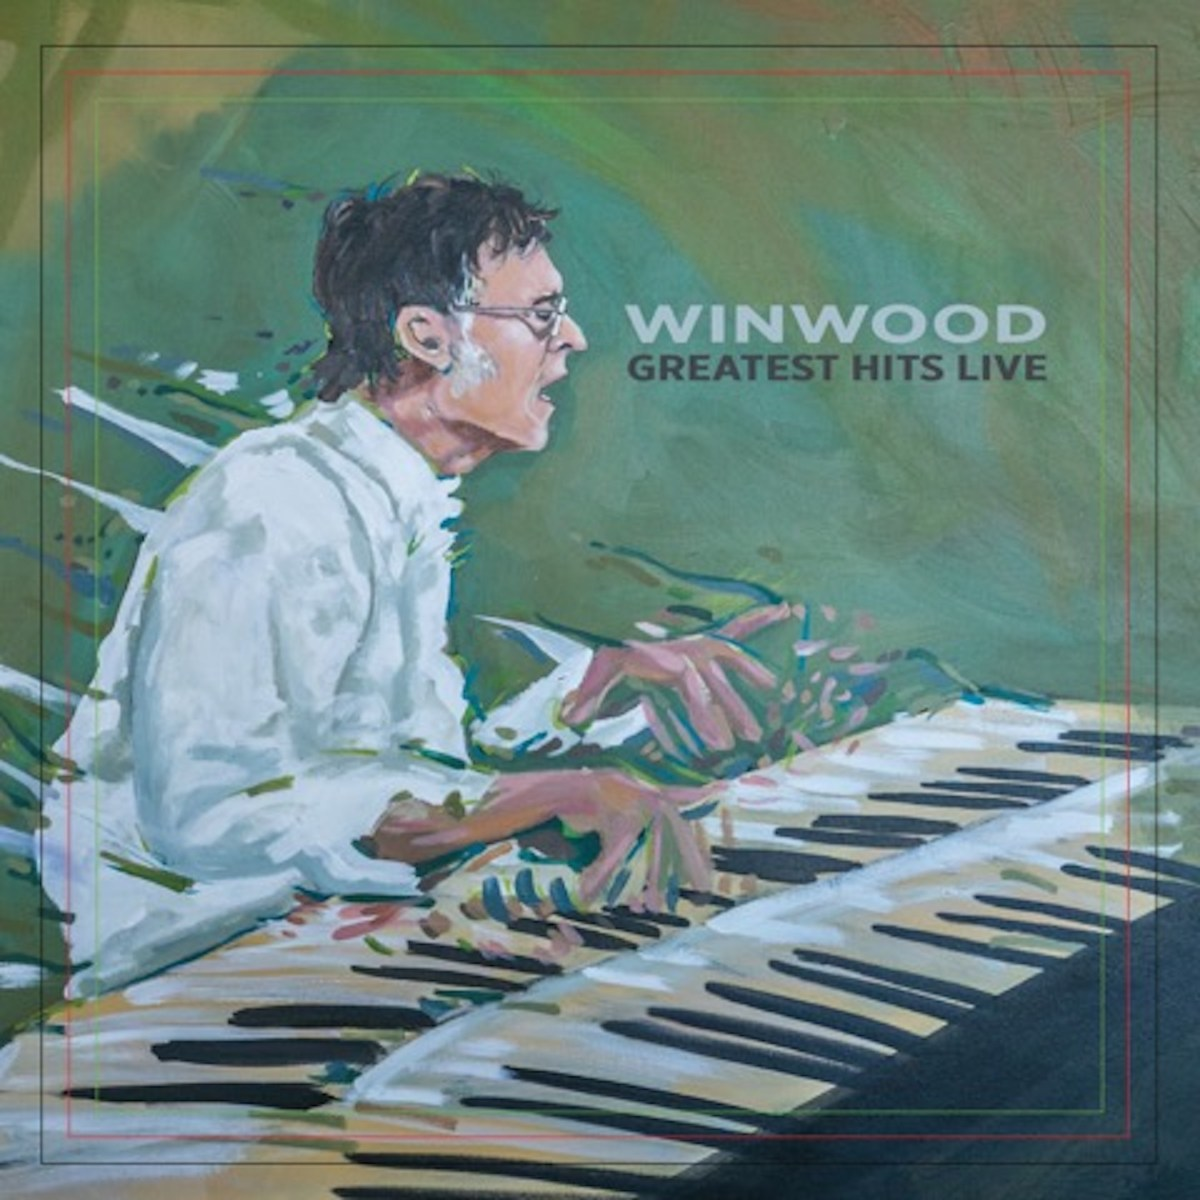 Steve Winwood - 'Greatest Hits Live'